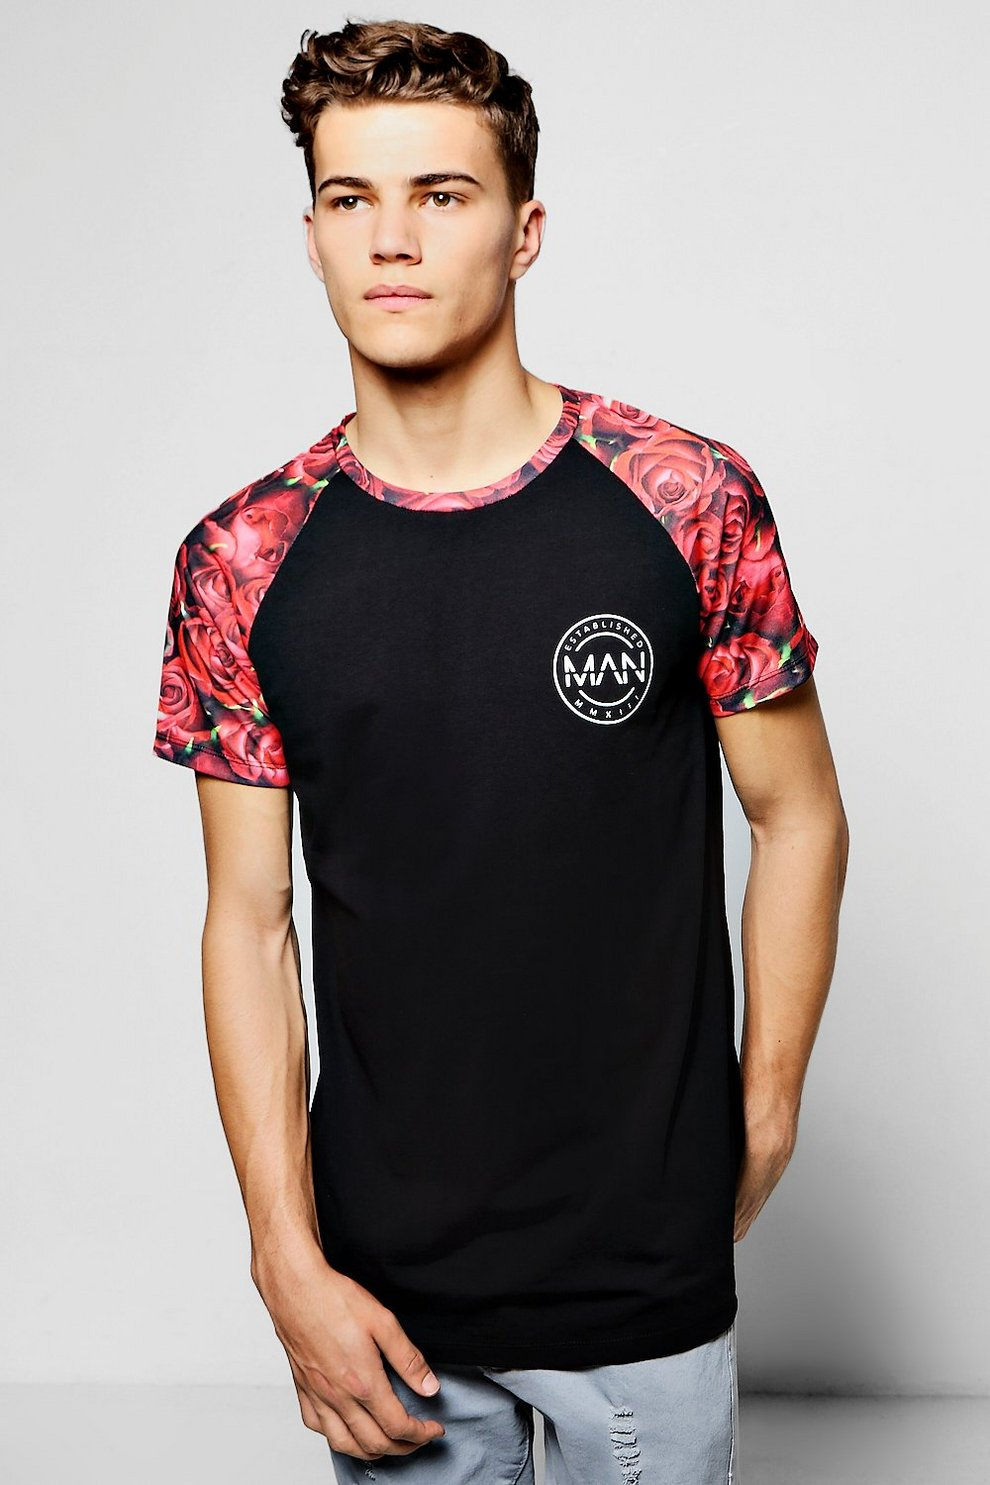 a731be450 Mens Red MAN Floral Raglan Sublimation T-Shirt. Hover to zoom